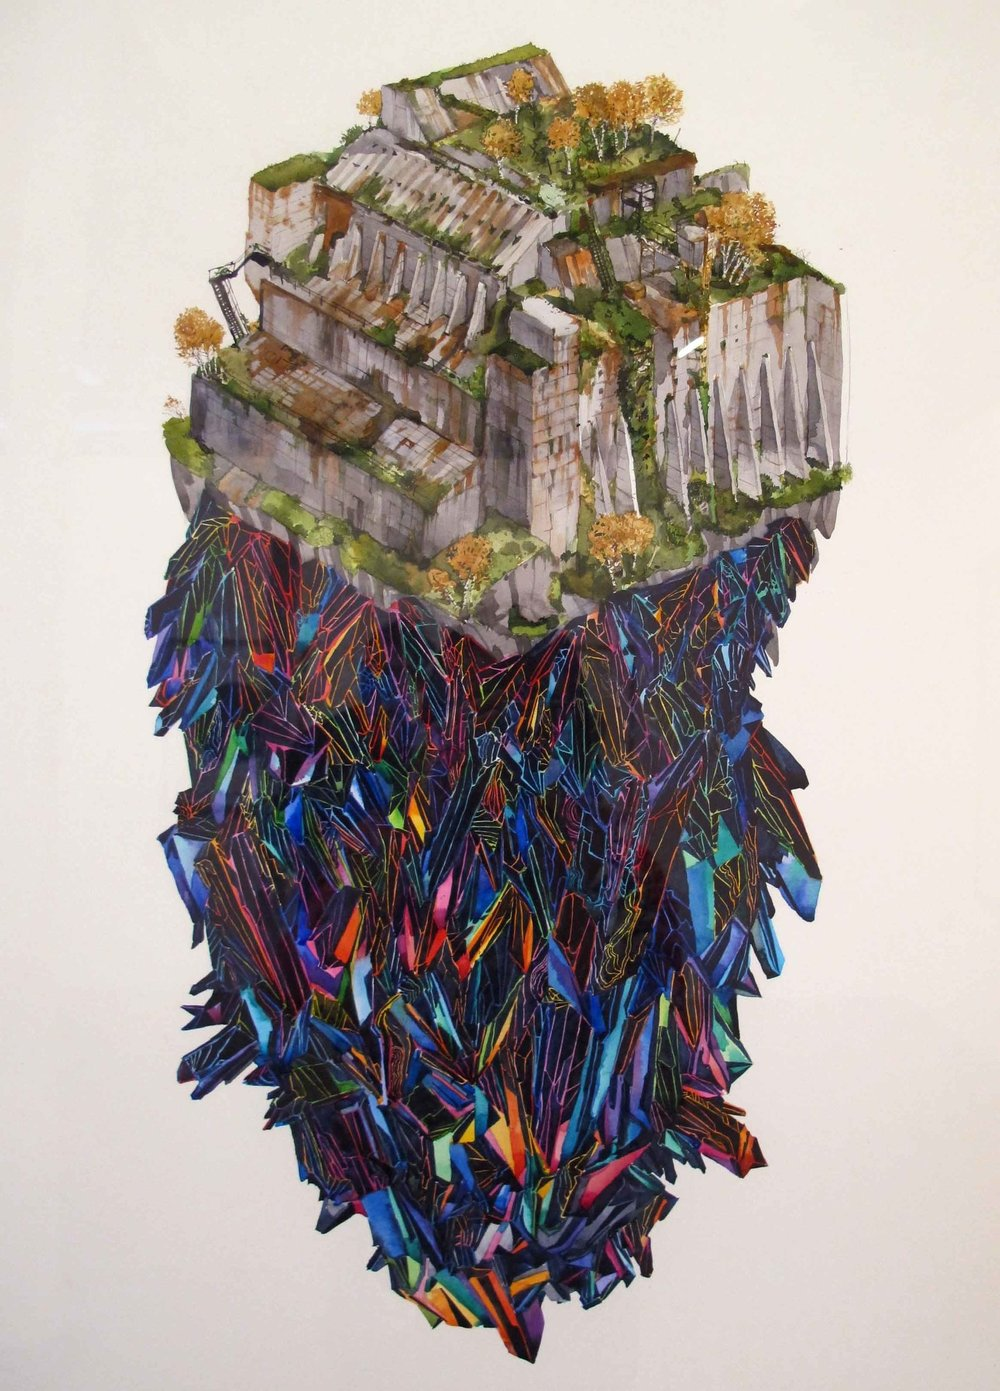 Simon MacEwan,  L'Etoile Mysterieuse,  2012, watercolour on paper, 76 x 56cm